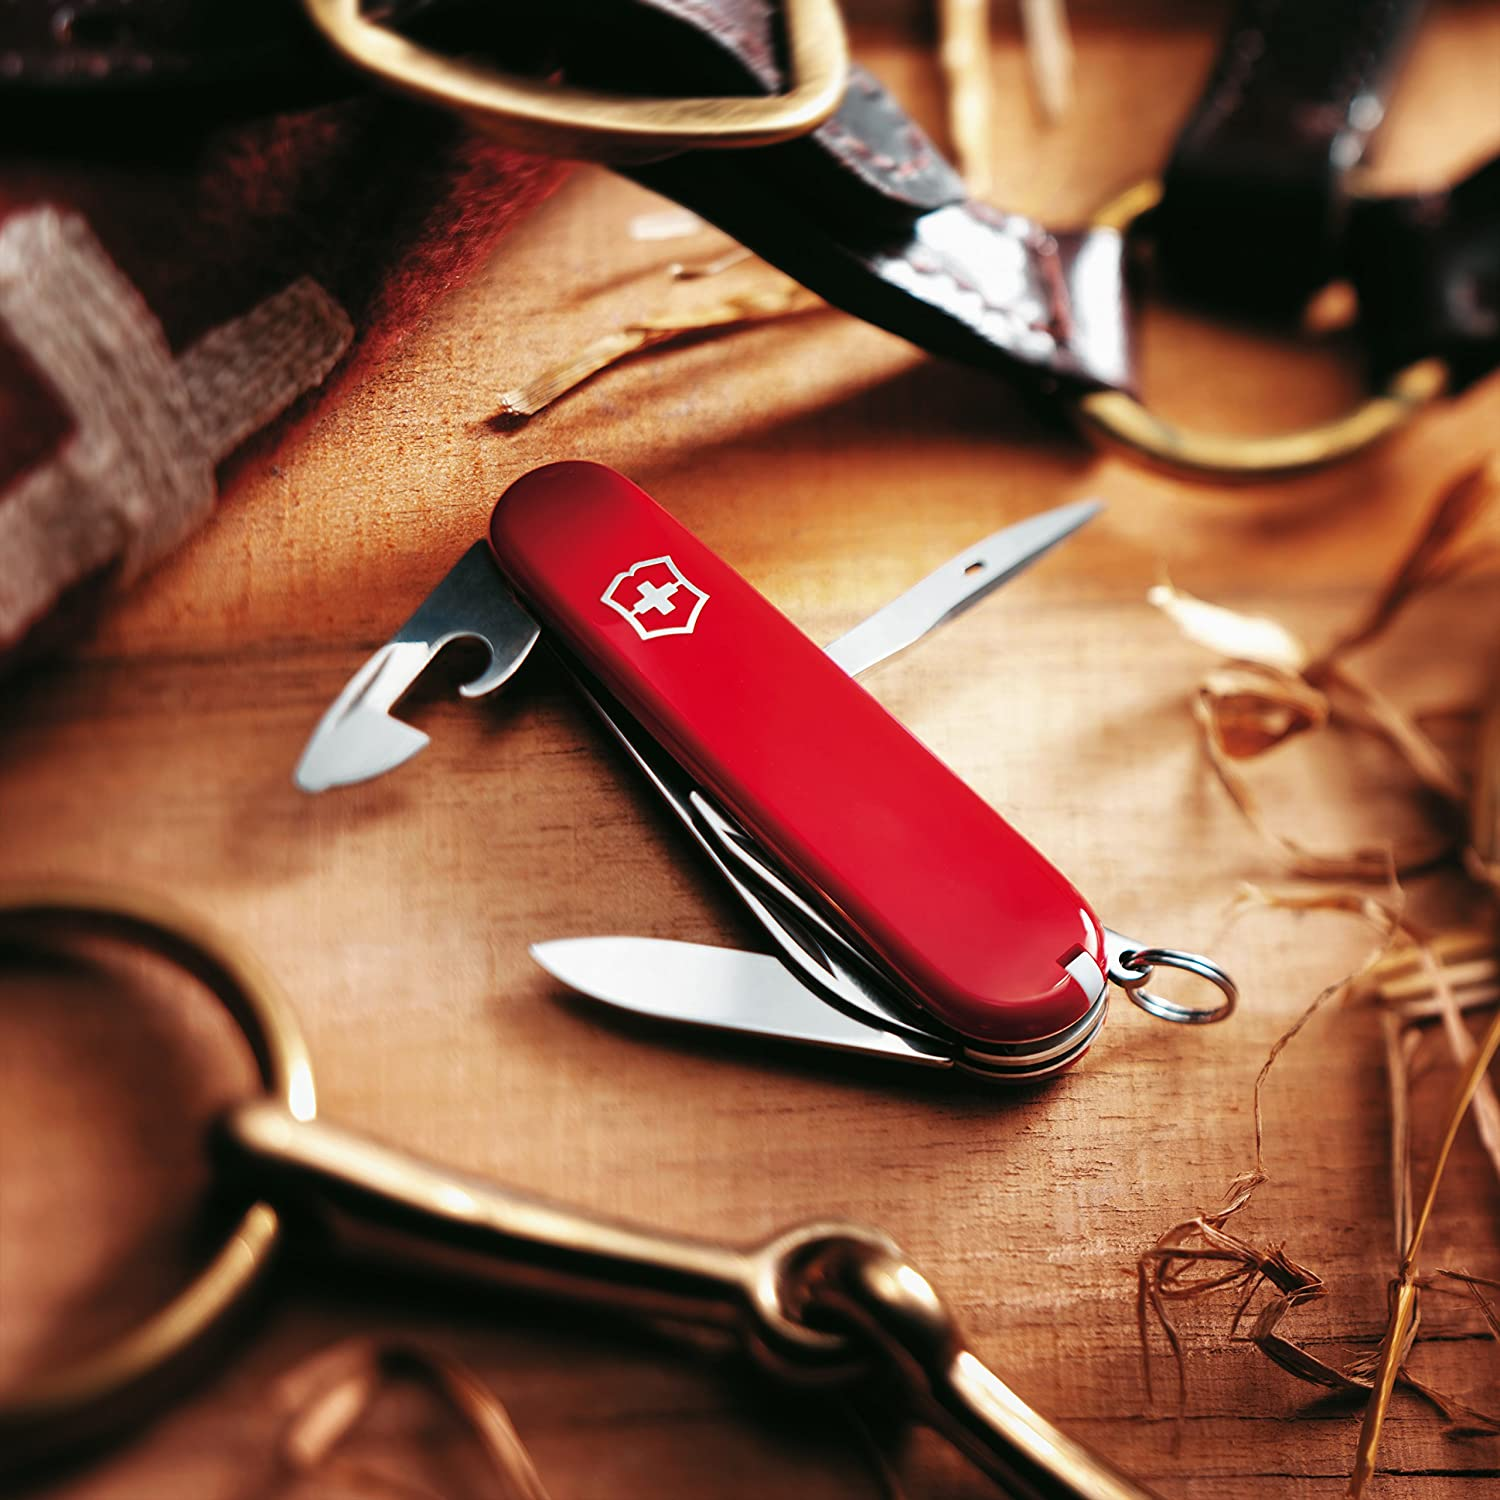 The Classic Swiss Army Knife